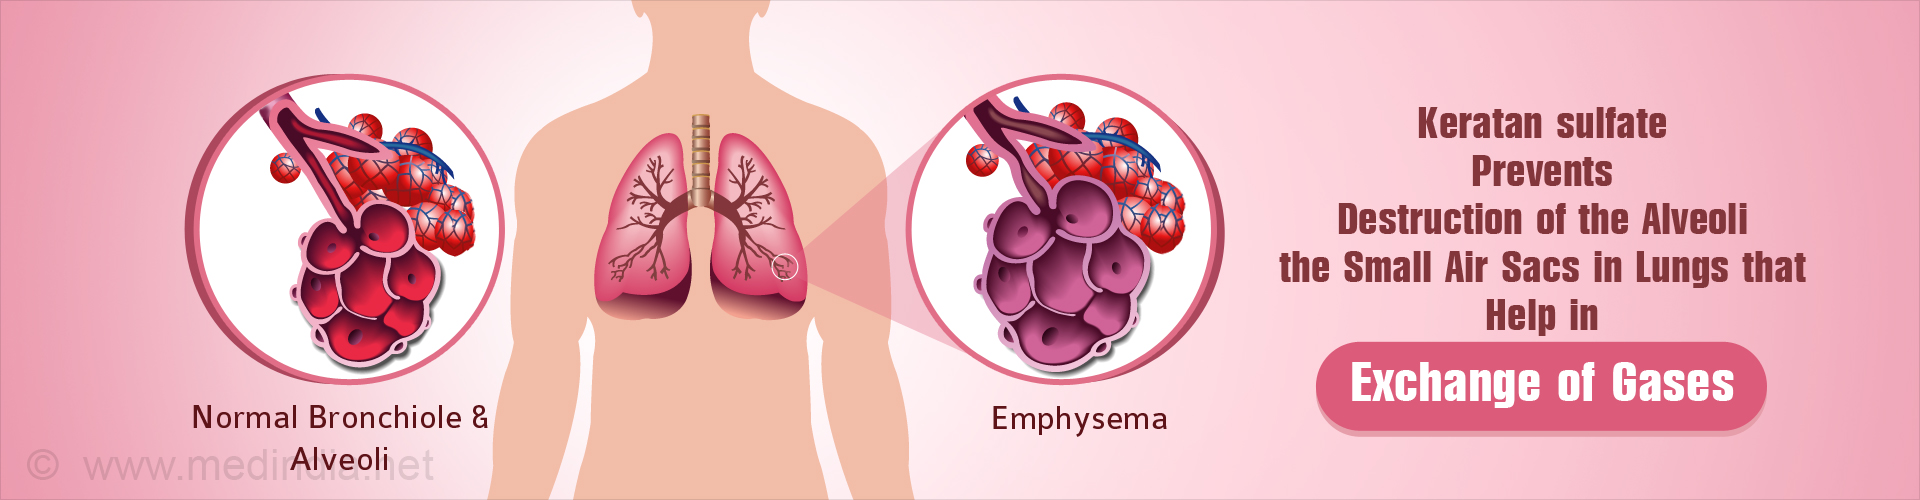 Sugar Compound Prevents Inflammation And Progression Of Emphysema